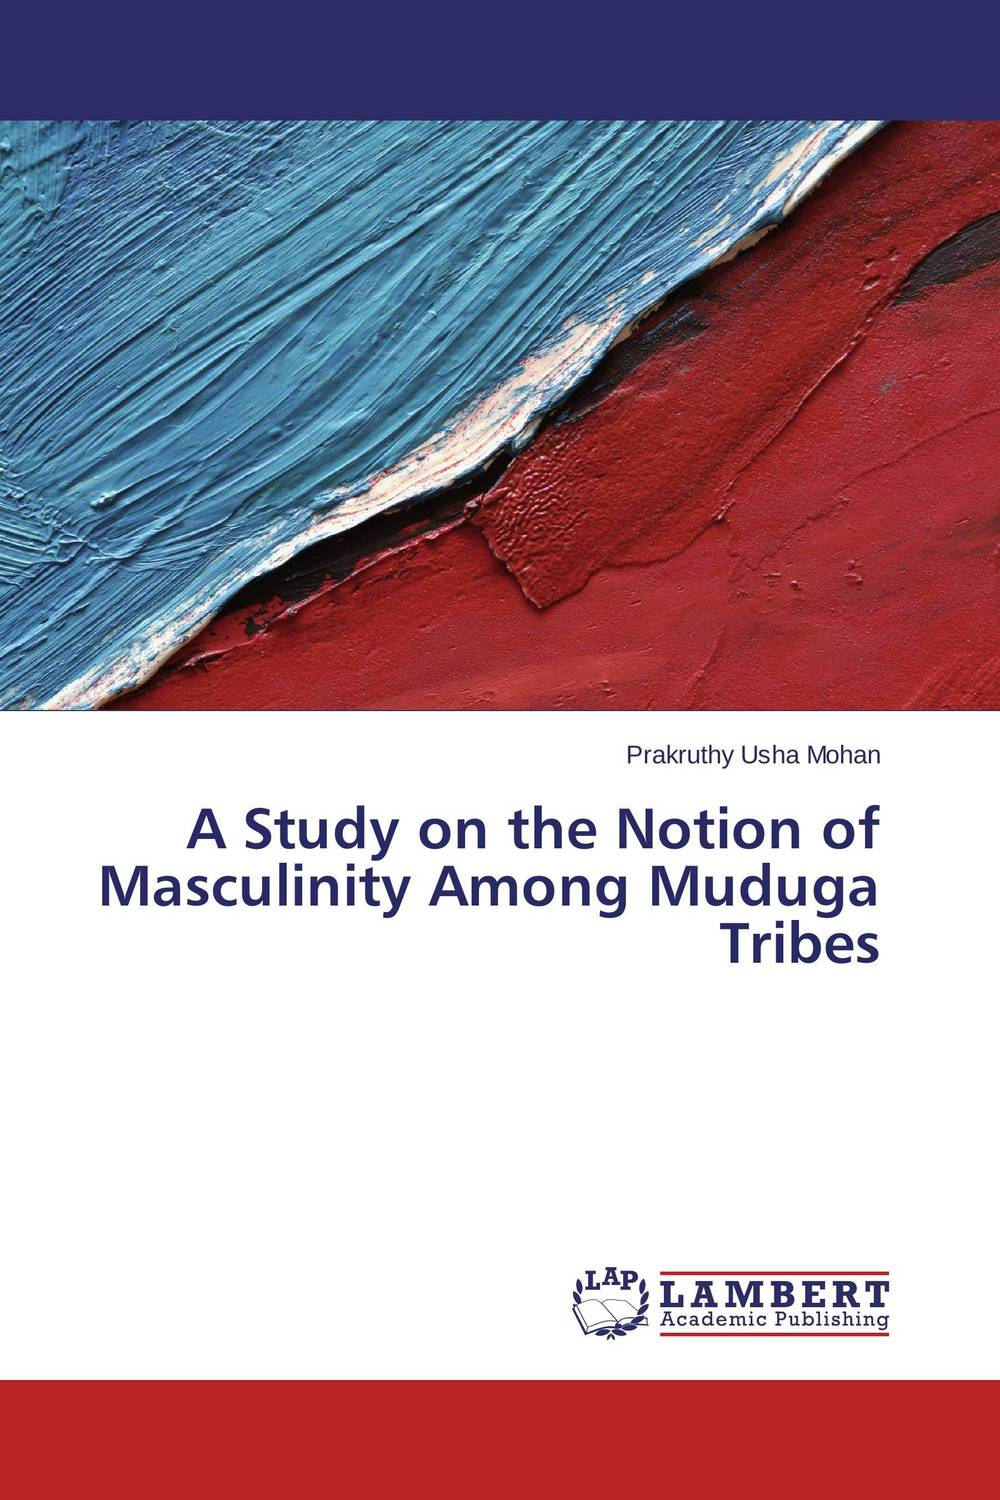 A Study on the Notion of Masculinity Among Muduga Tribes nativist notions